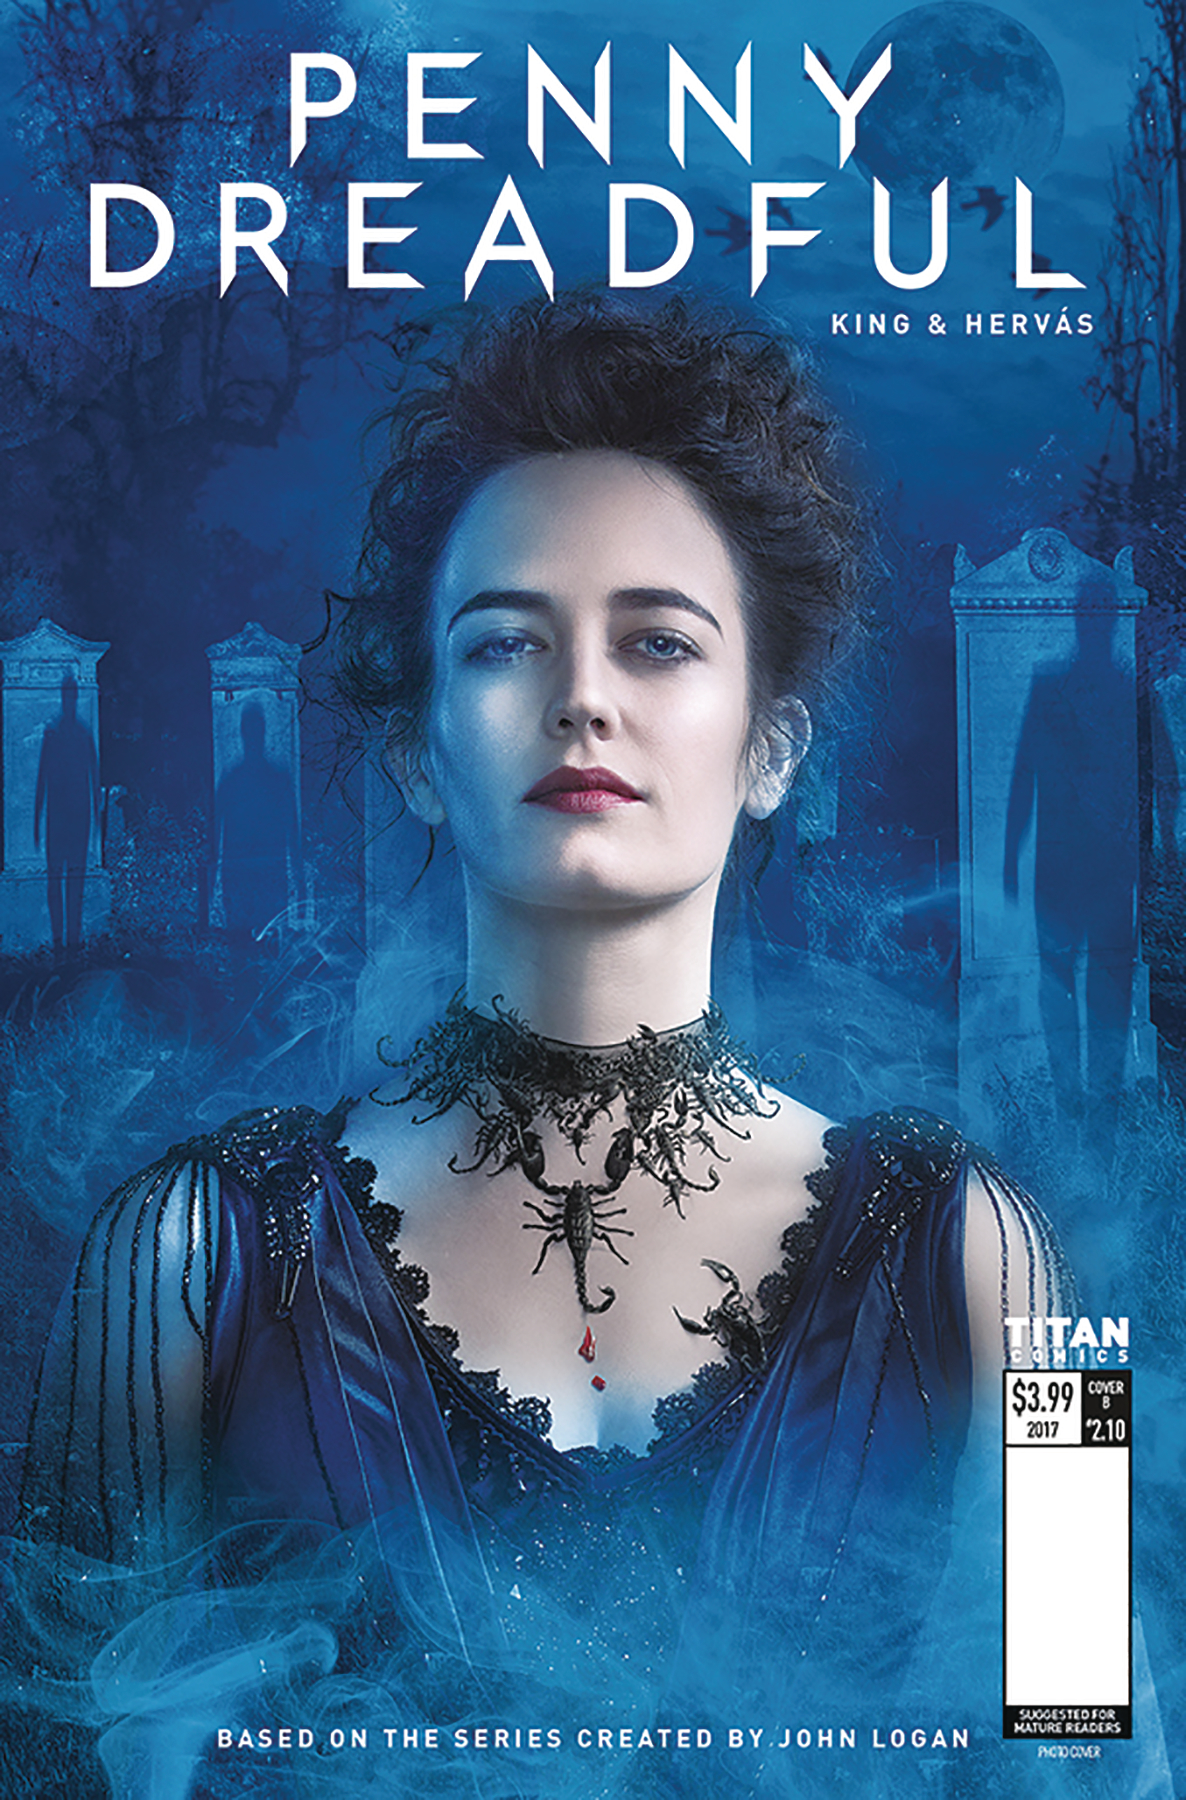 PENNY DREADFUL #10 CVR B PHOTO